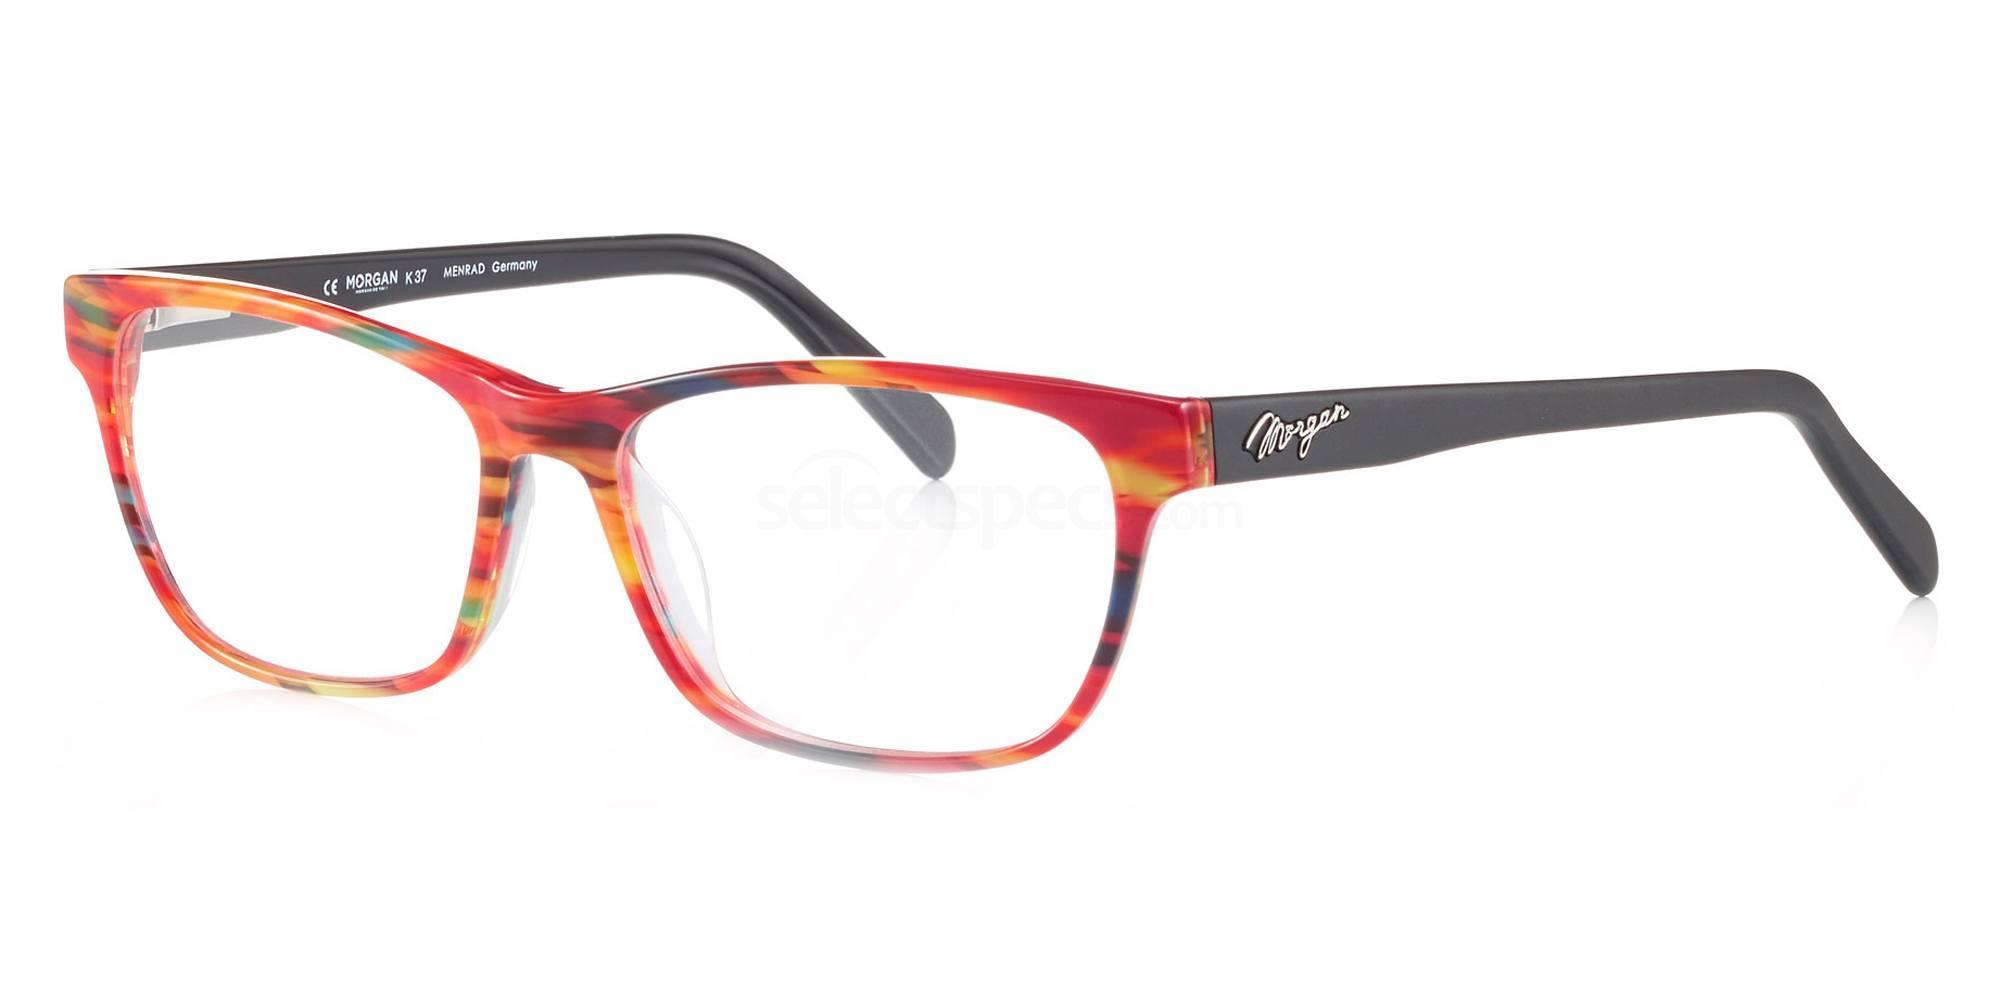 4225 201106 Glasses, MORGAN Eyewear